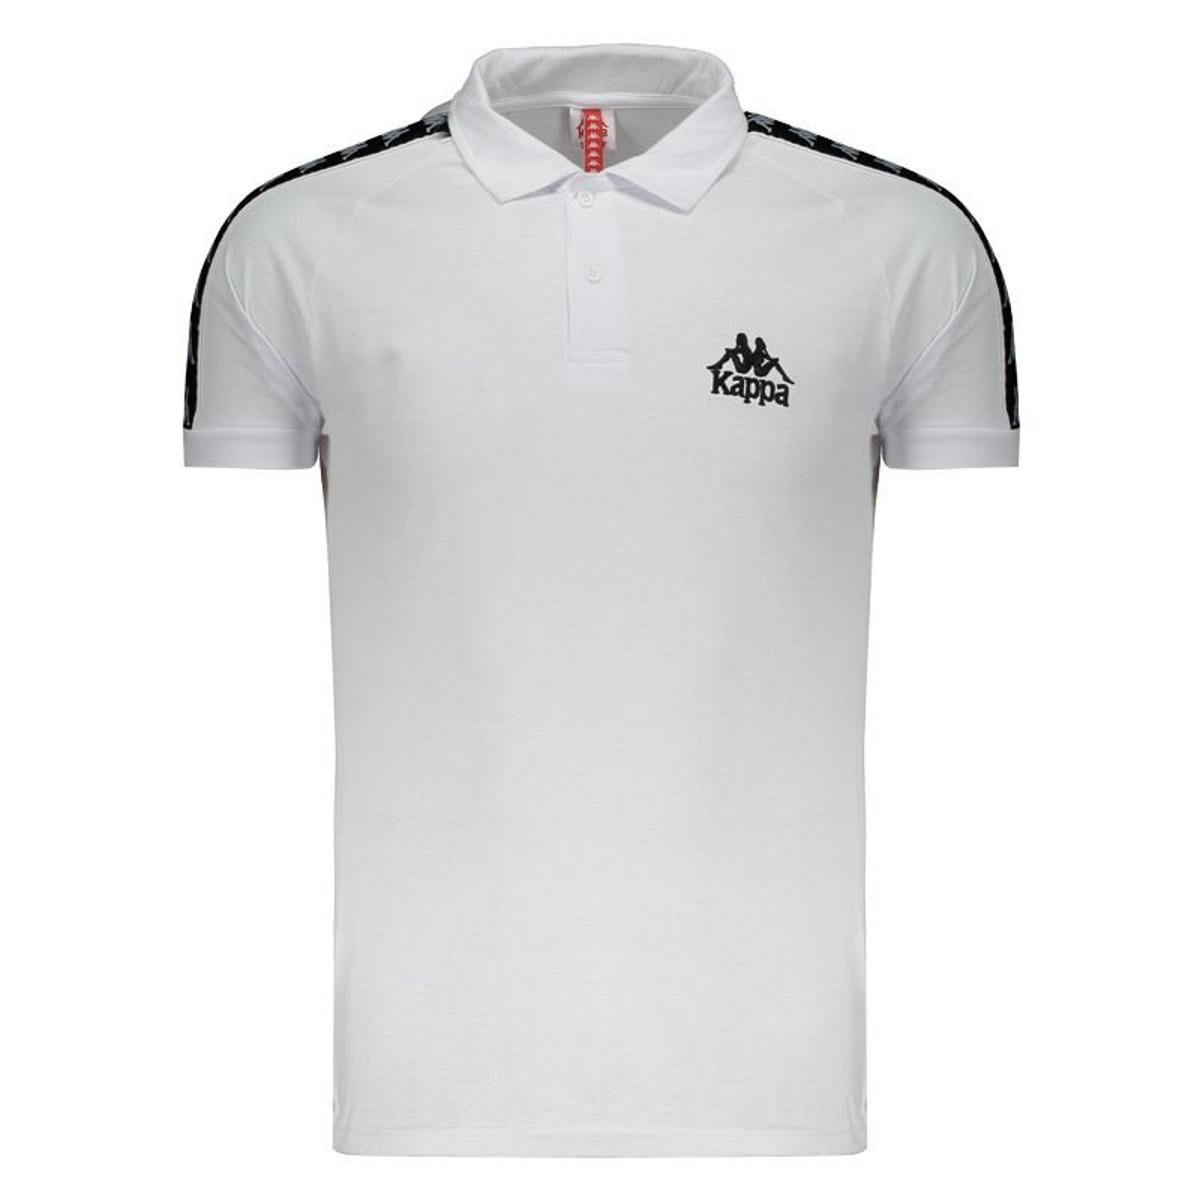 online store 015e3 3bceb Camisa Polo Kappa Authentic Due Due - Branco